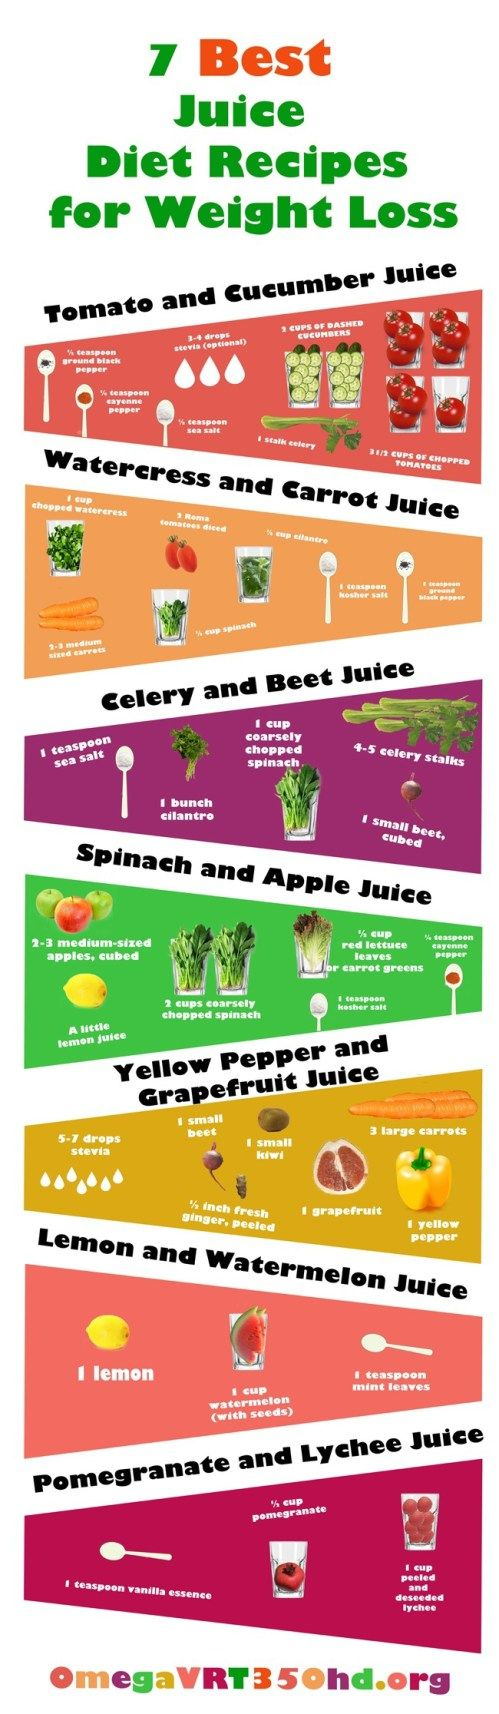 juice recipes for weight loss infographic